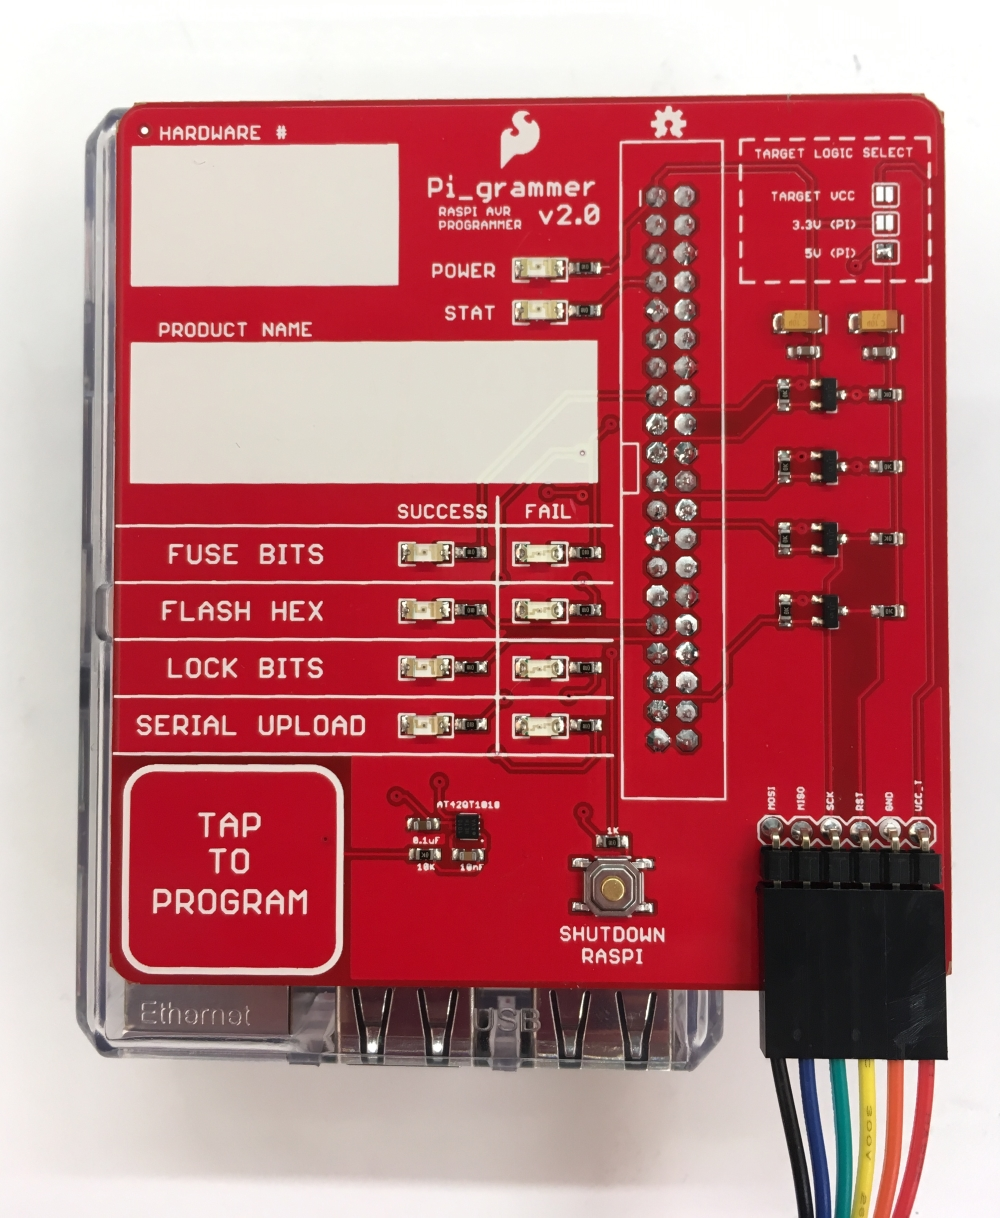 Raspberry Pi Stand-Alone Programmer - learn sparkfun com